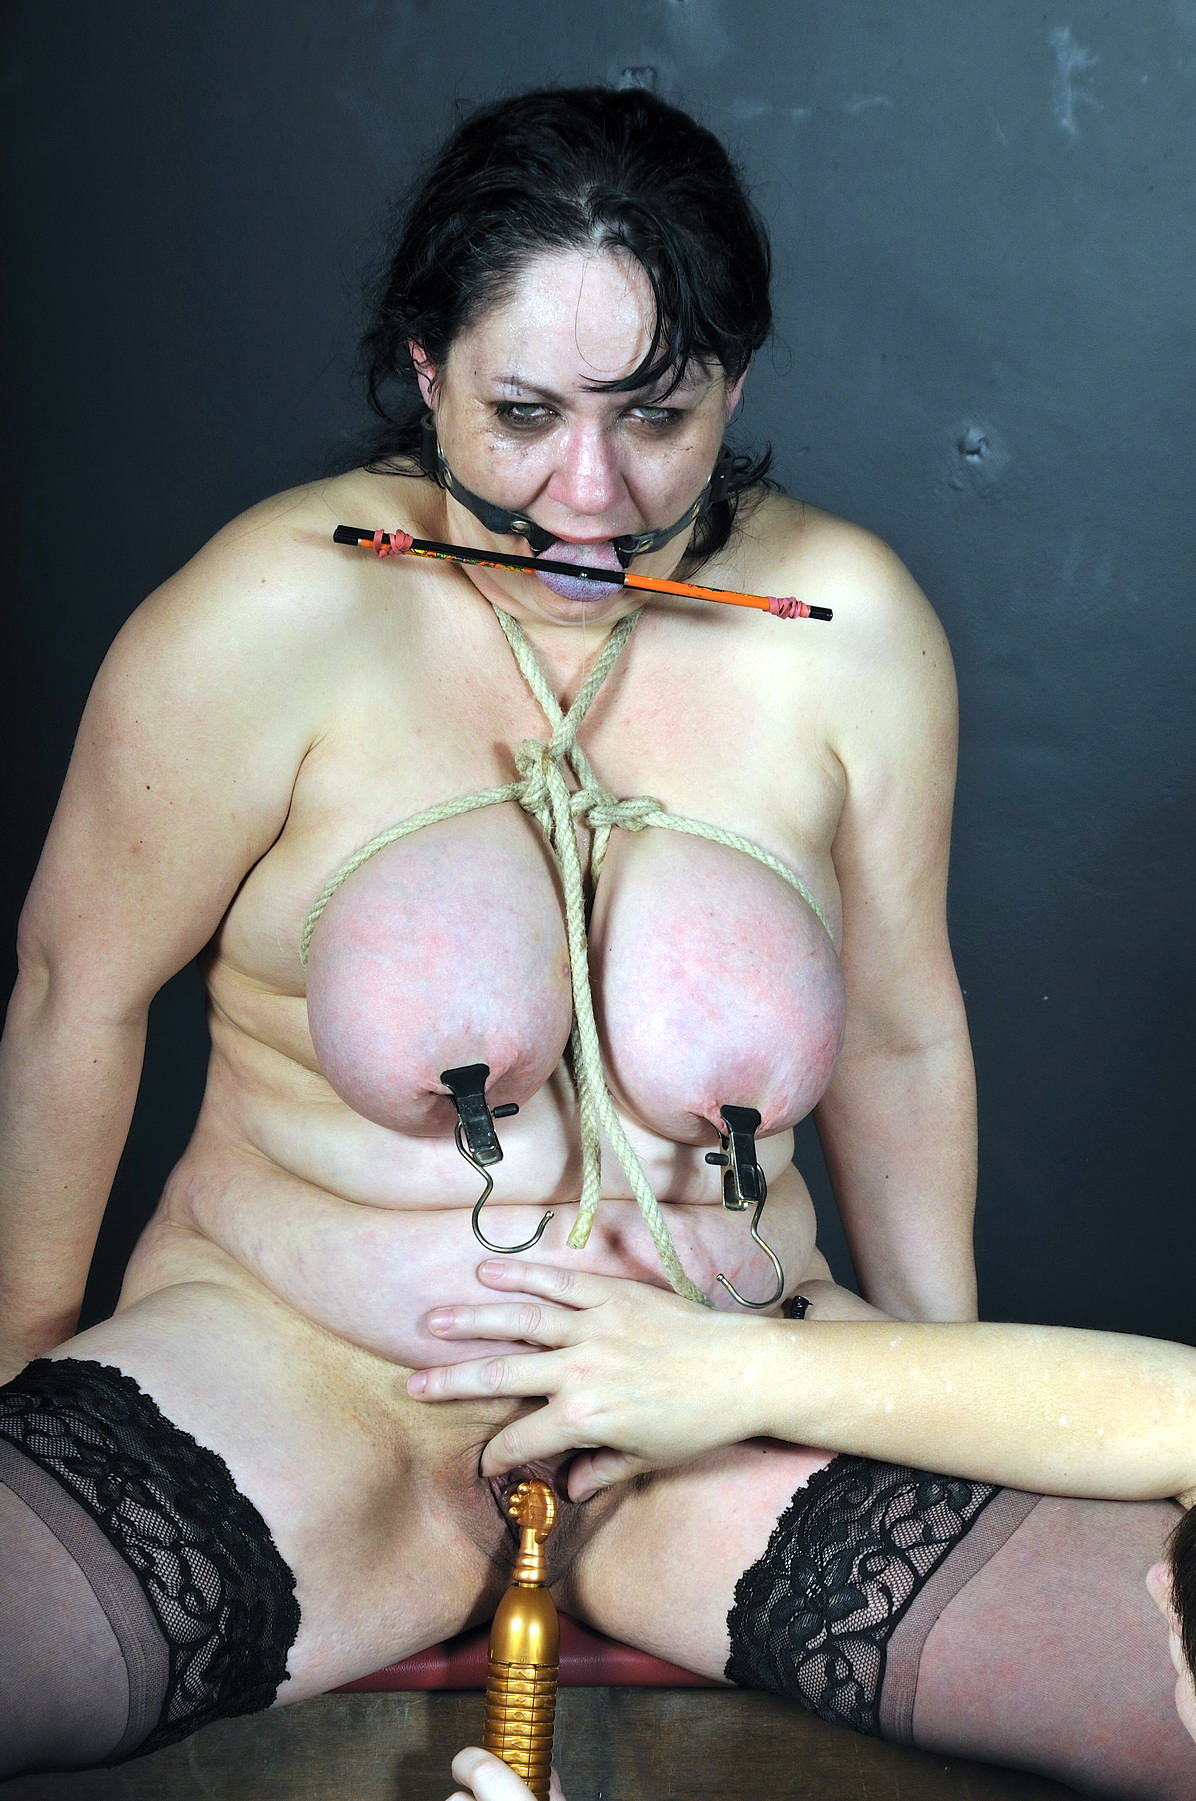 Not bbw torture bondage seems